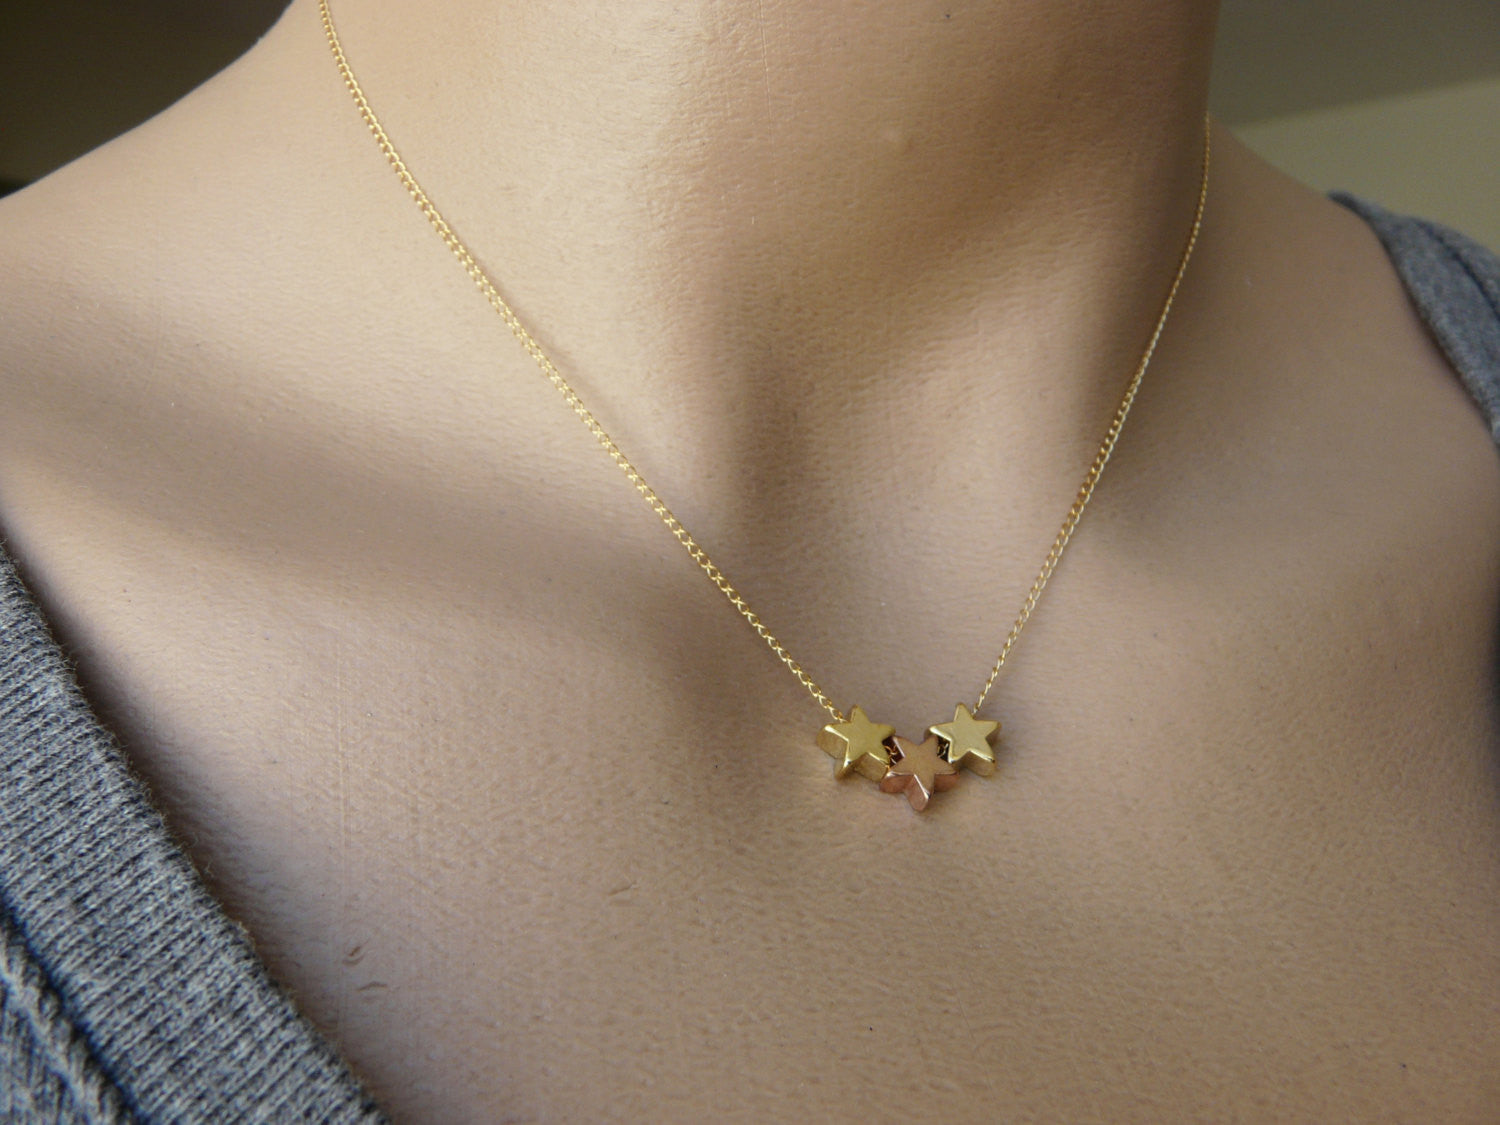 Tiny stars necklace - OpaLandJewelry